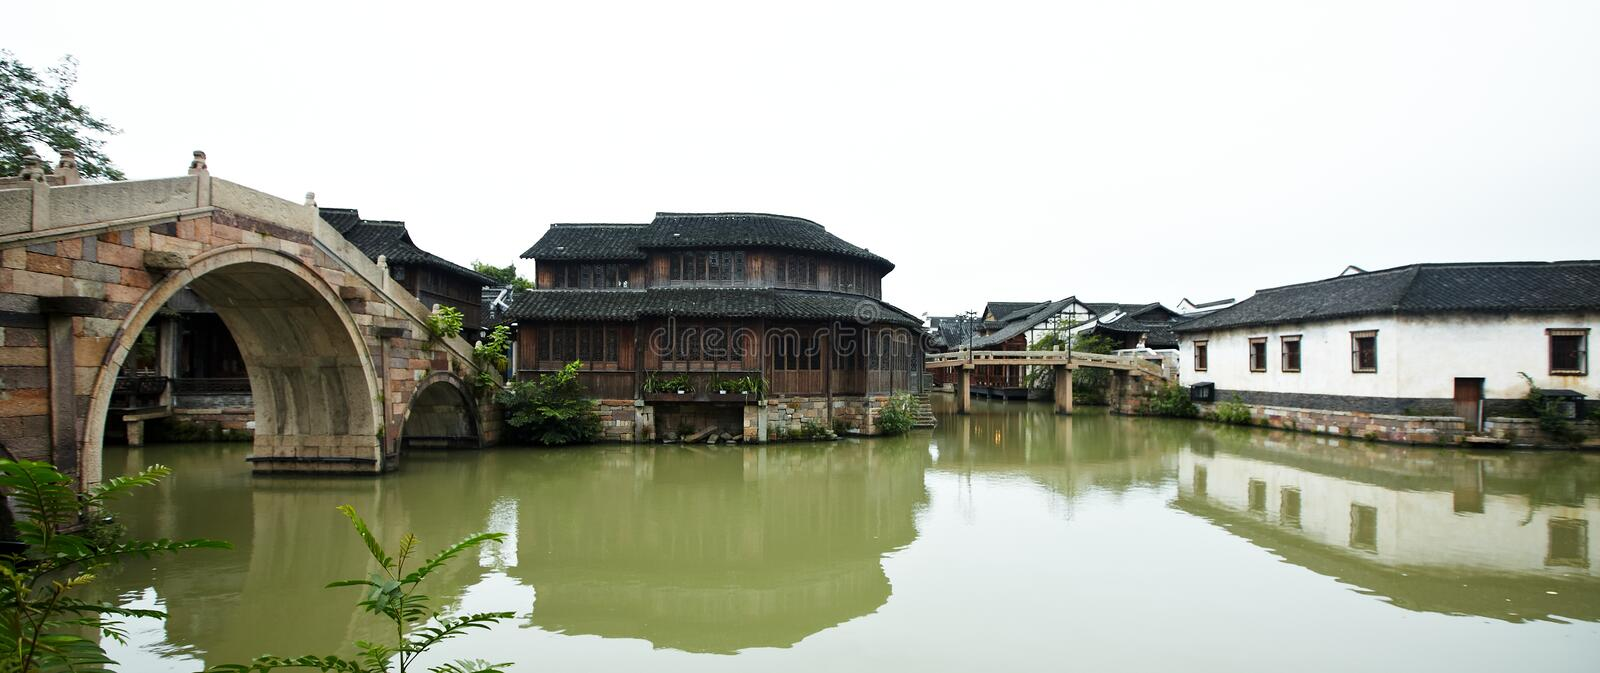 The Chinese watery town buildings. And marina by the river ,wuzhen,jiangsu,China royalty free stock images